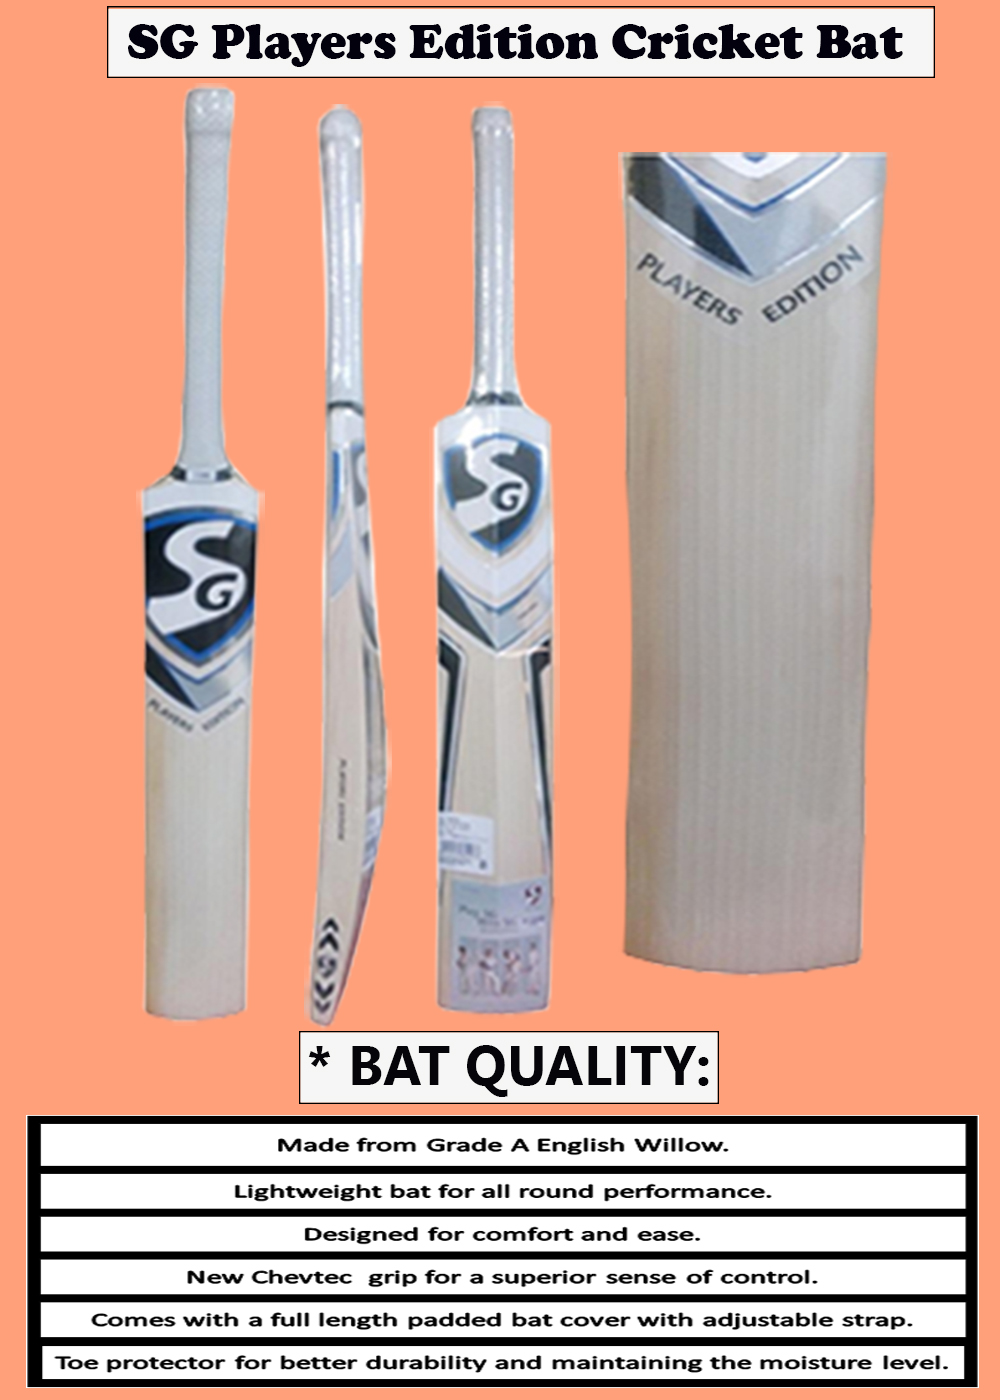 SG Players Edition Cricket Bat_4